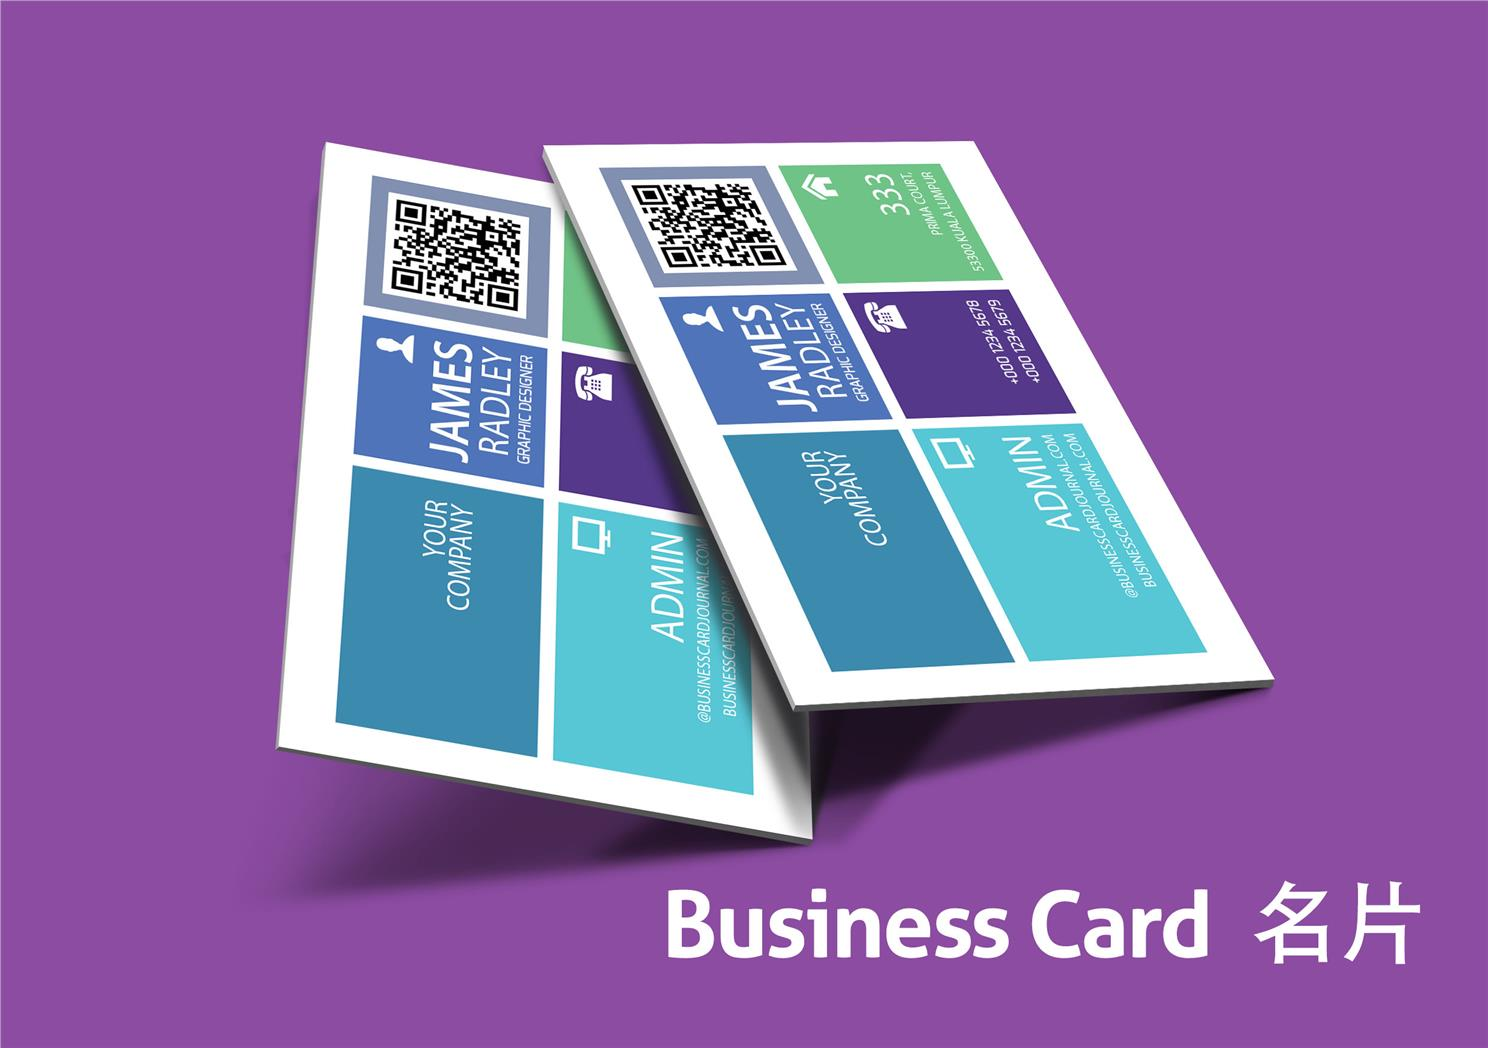 Business card namecard print bs car end 11142018 815 pm business card namecard print bs card art card 200pcs magicingreecefo Choice Image